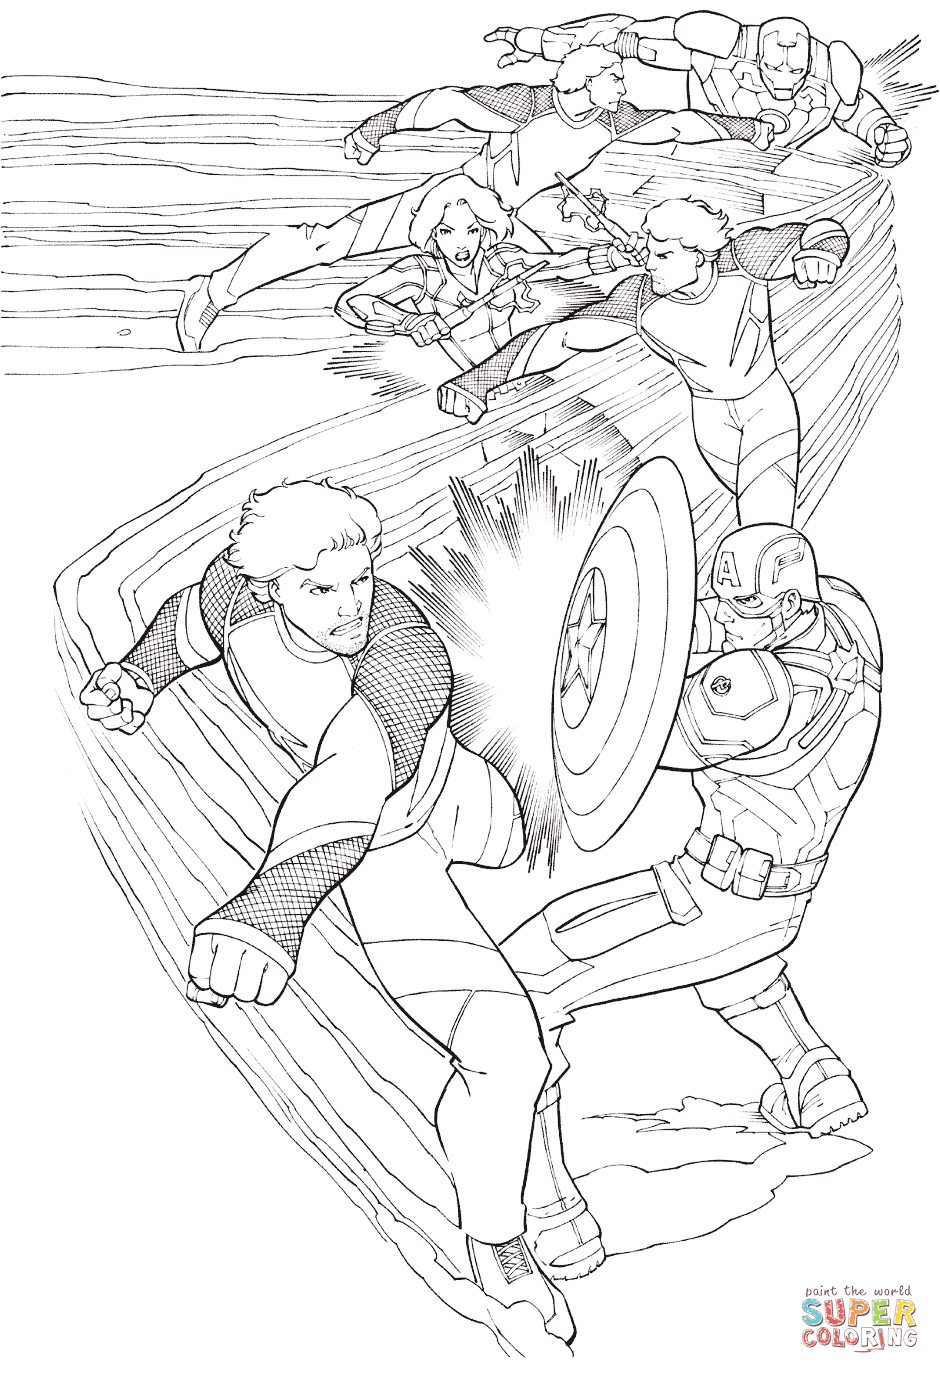 Click the avengers quicksilver coloring pages